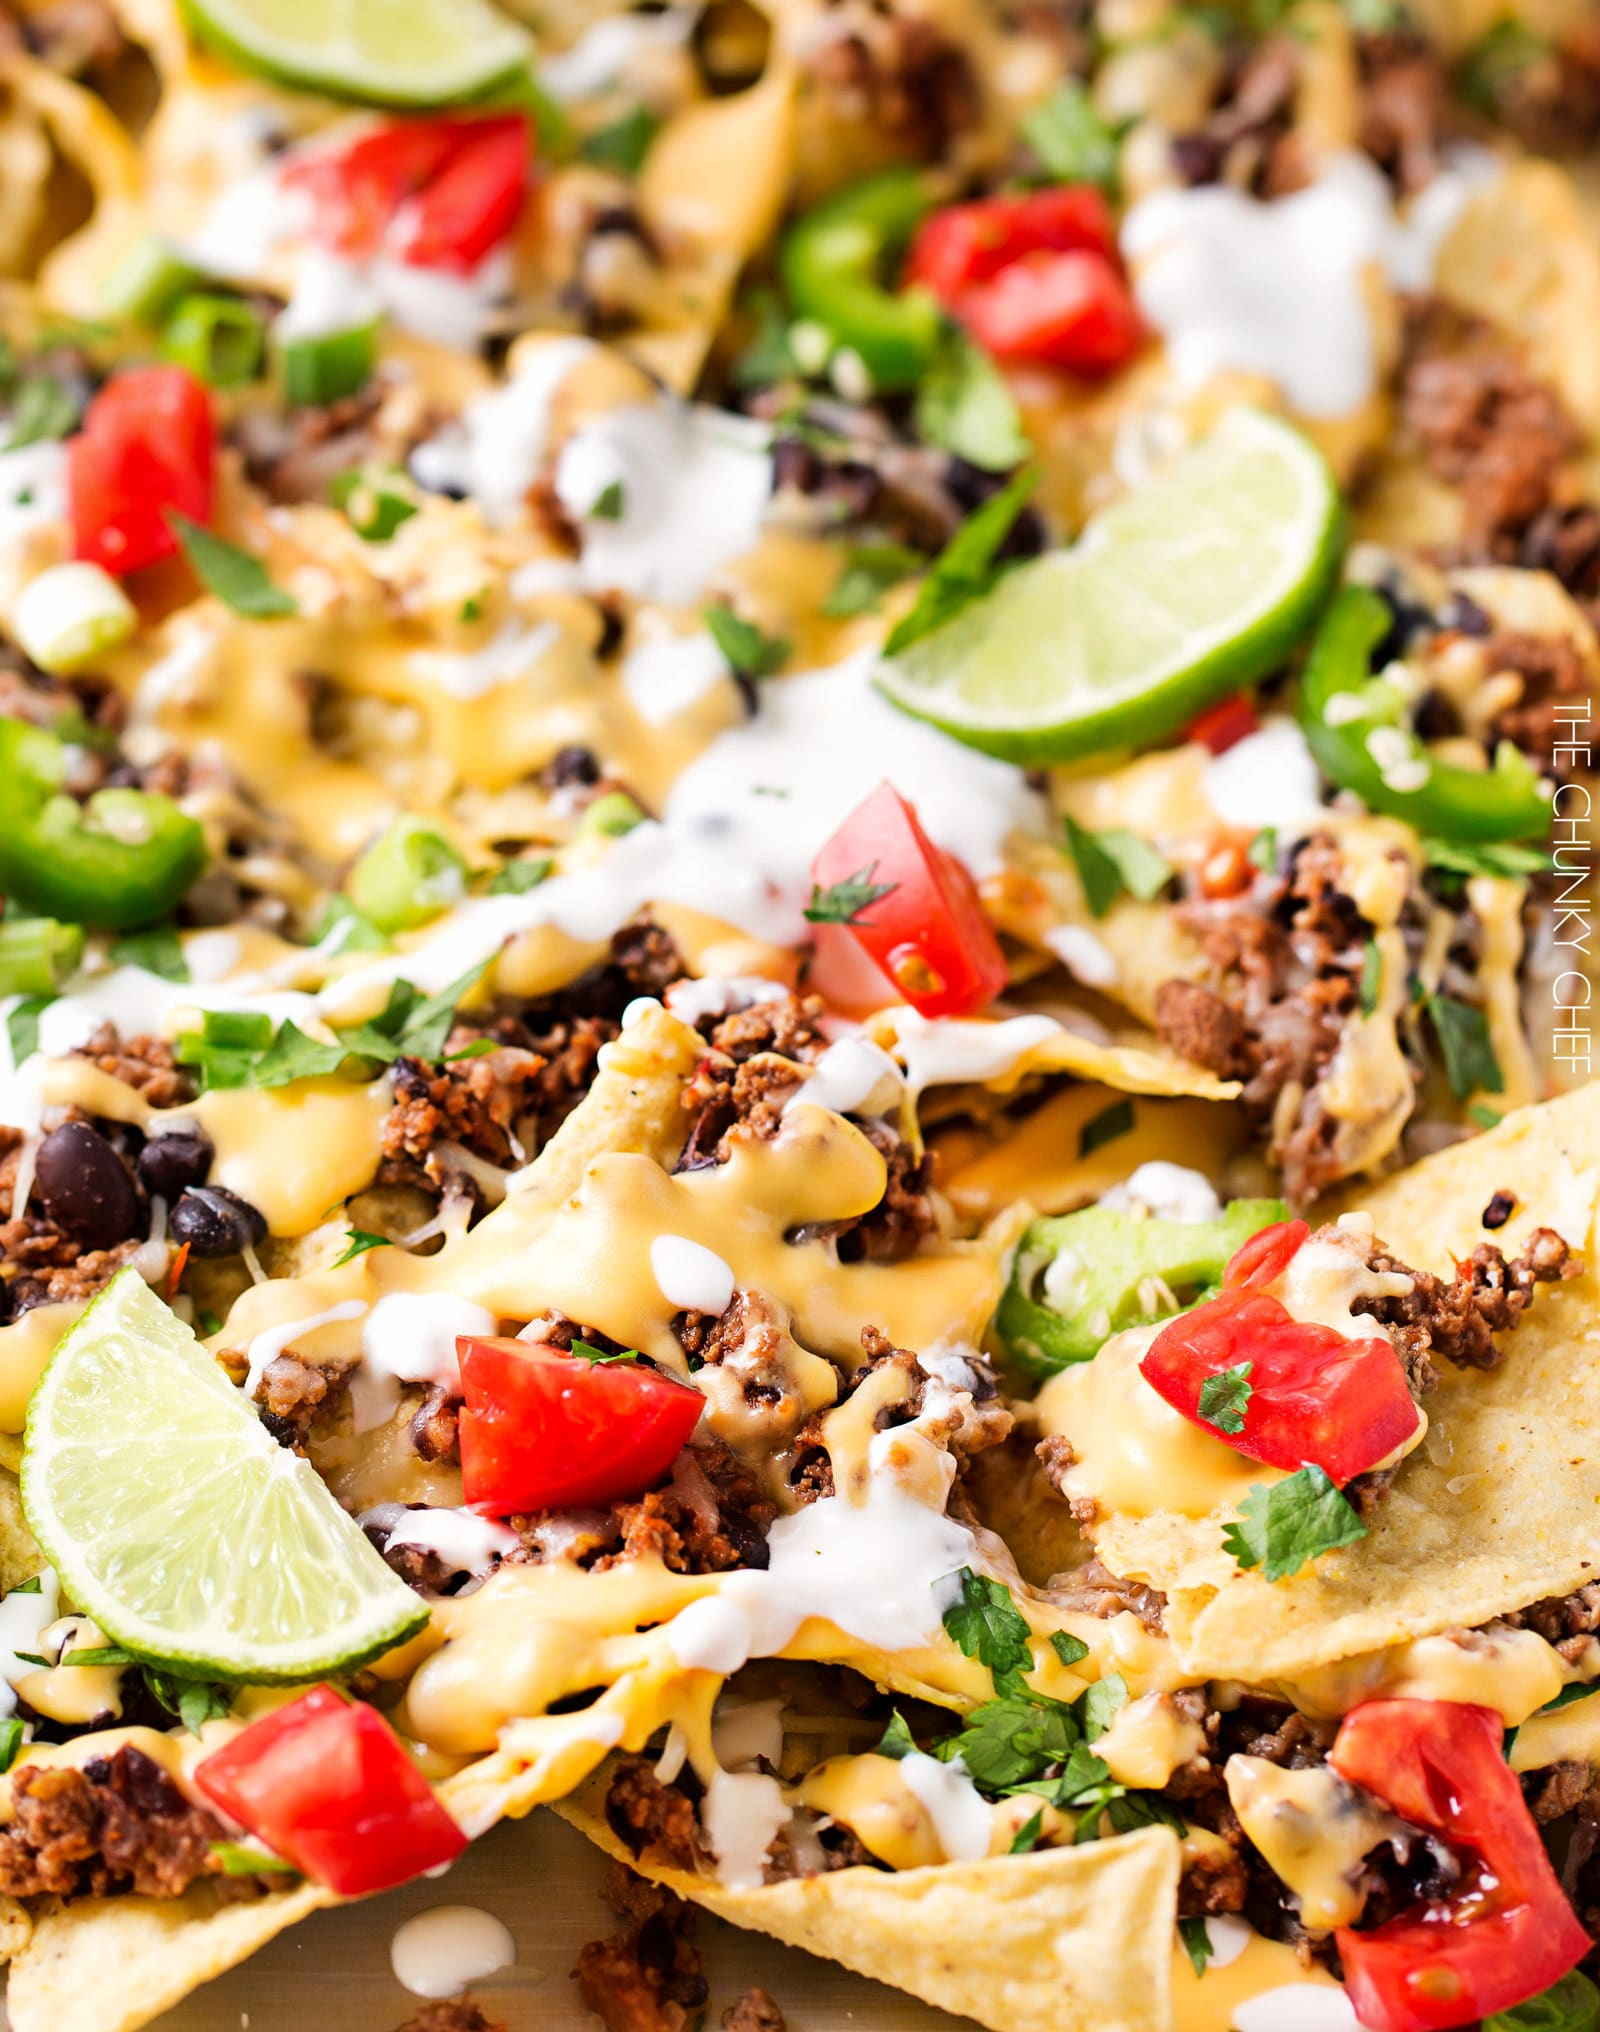 Sheet Pan Beef and Black Bean Nachos | These sheet pan nachos are sure to be a crowd pleaser! Layer after layer of mouthwatering flavor, smothered with a jalapeño cheese sauce and loaded with classic nacho toppings! | http://thechunkychef.com